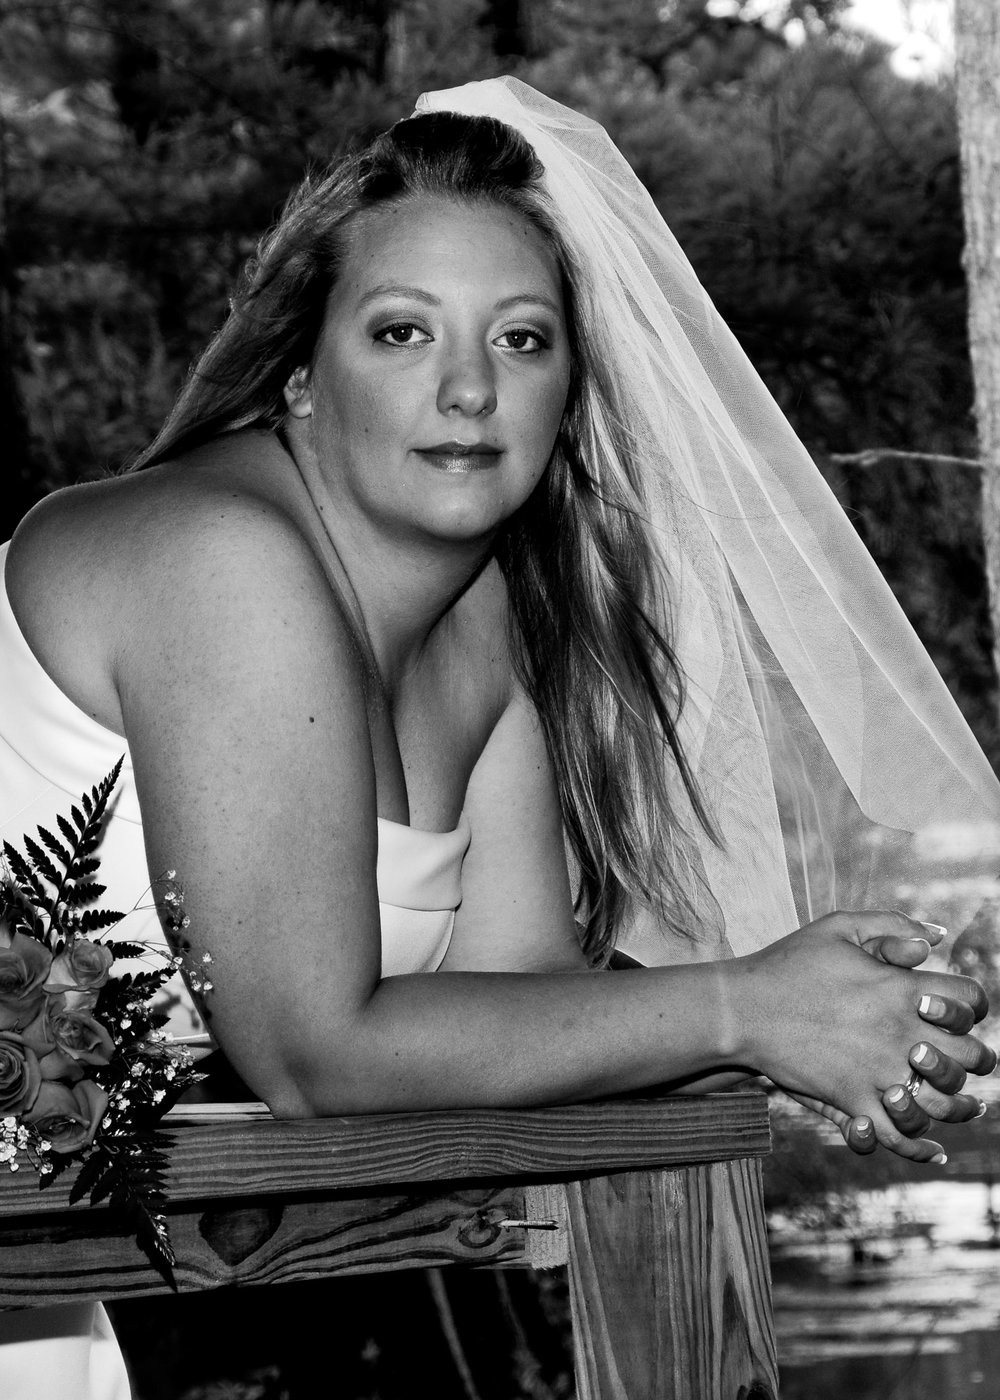 Bride in black and white.